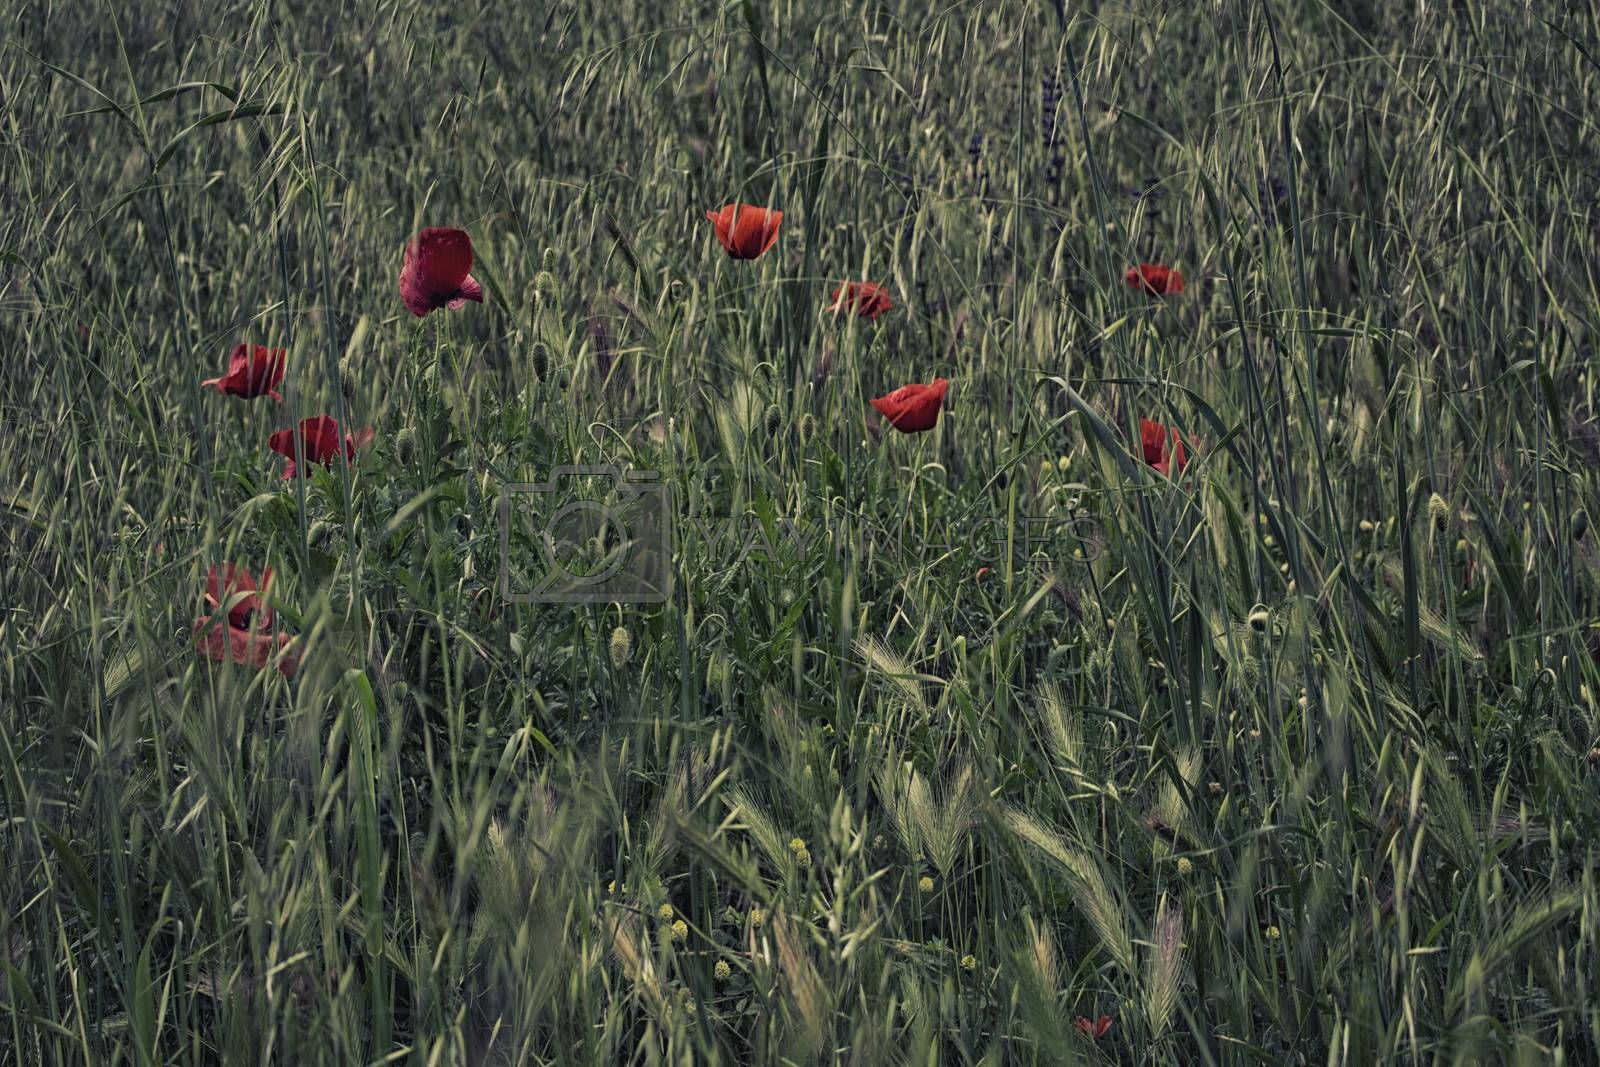 Red poppies on green weeds field with flowers